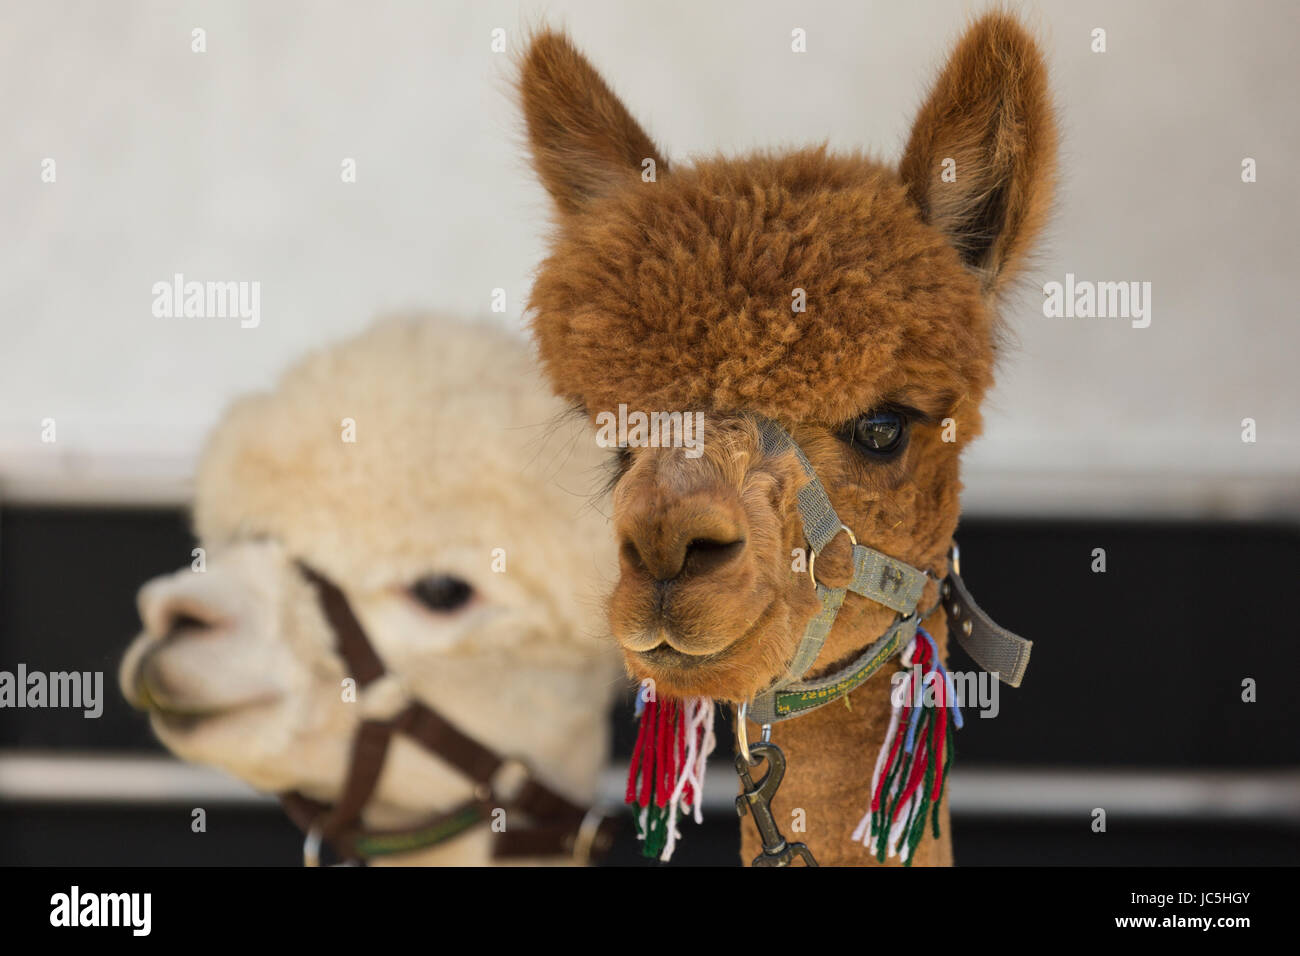 Head shot of two (2) captive Alpacas (Vicugna pacos), one brown/ginger and one white coloured on display at Ham - Stock Image